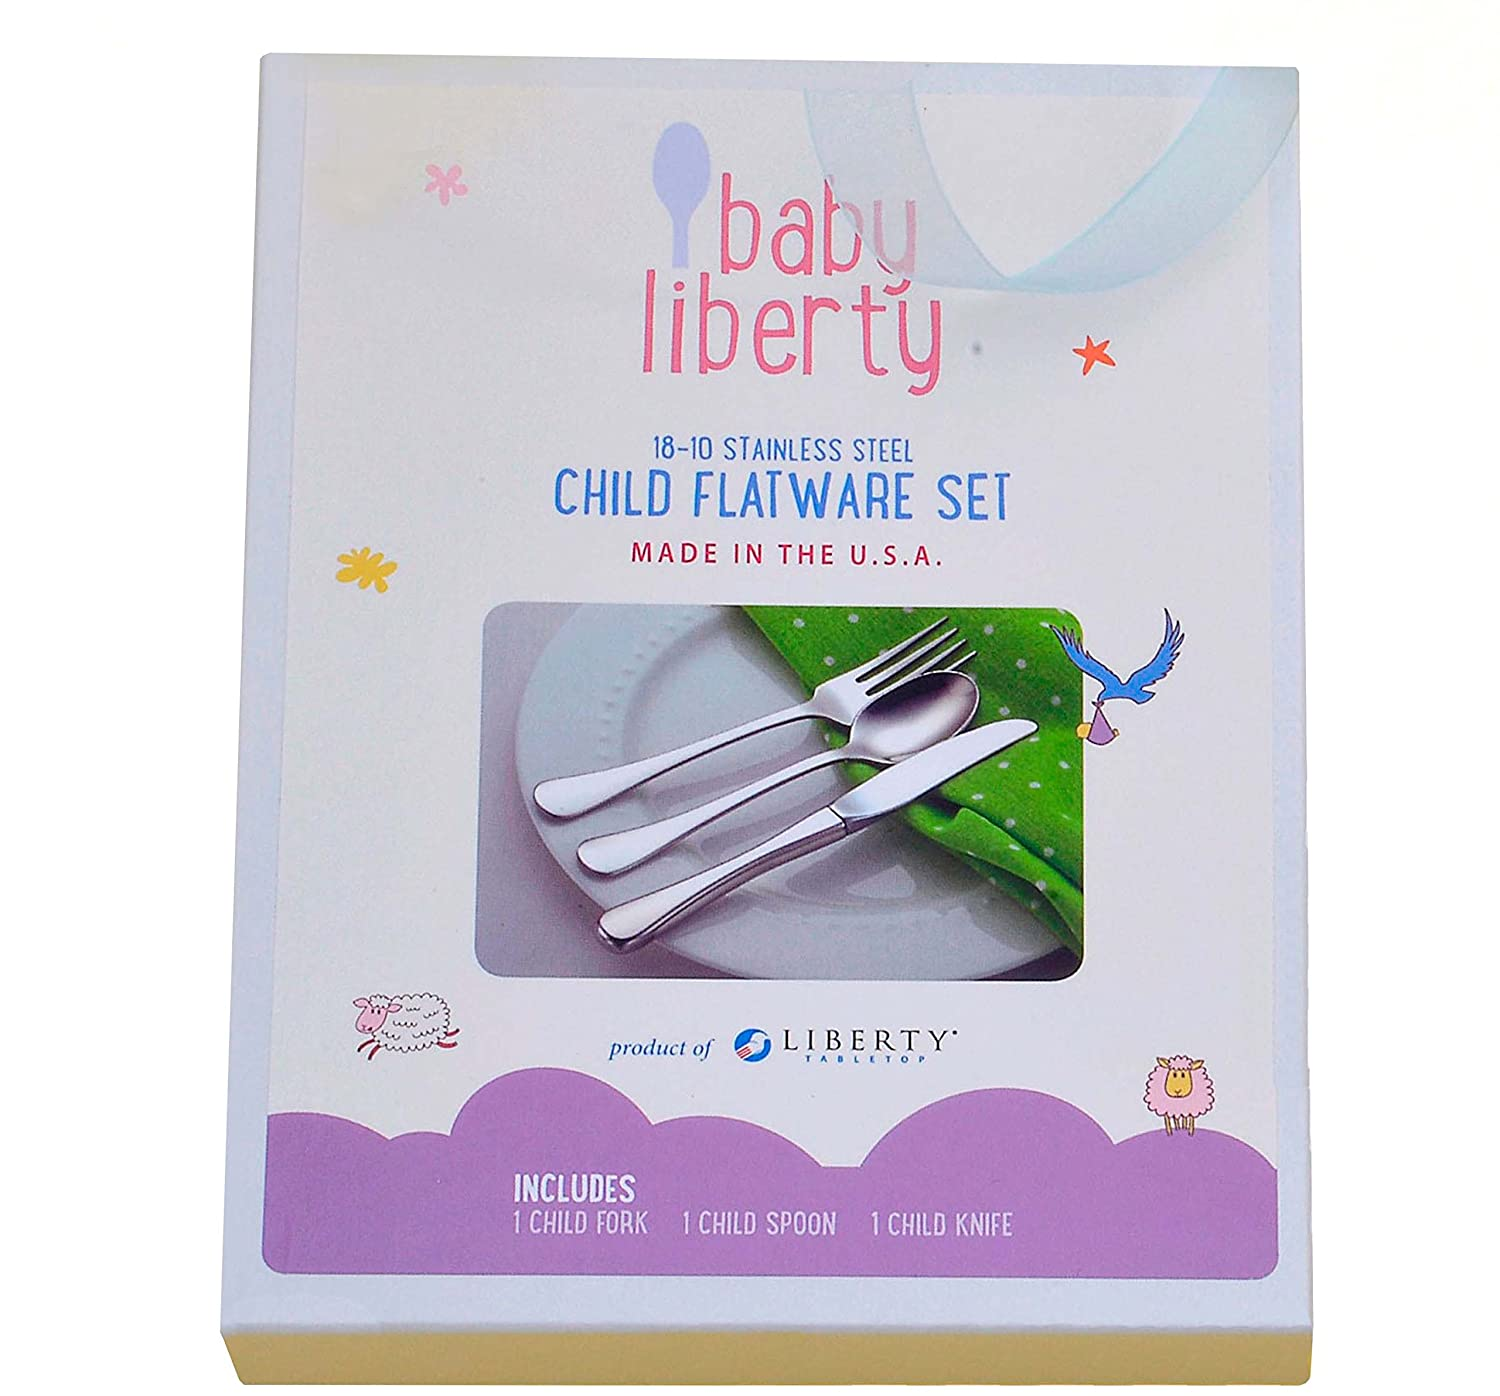 Baby Liberty 3 Piece Child Flatware Set in Gift Box by Liberty Tabletop   B01BPEJ5QE